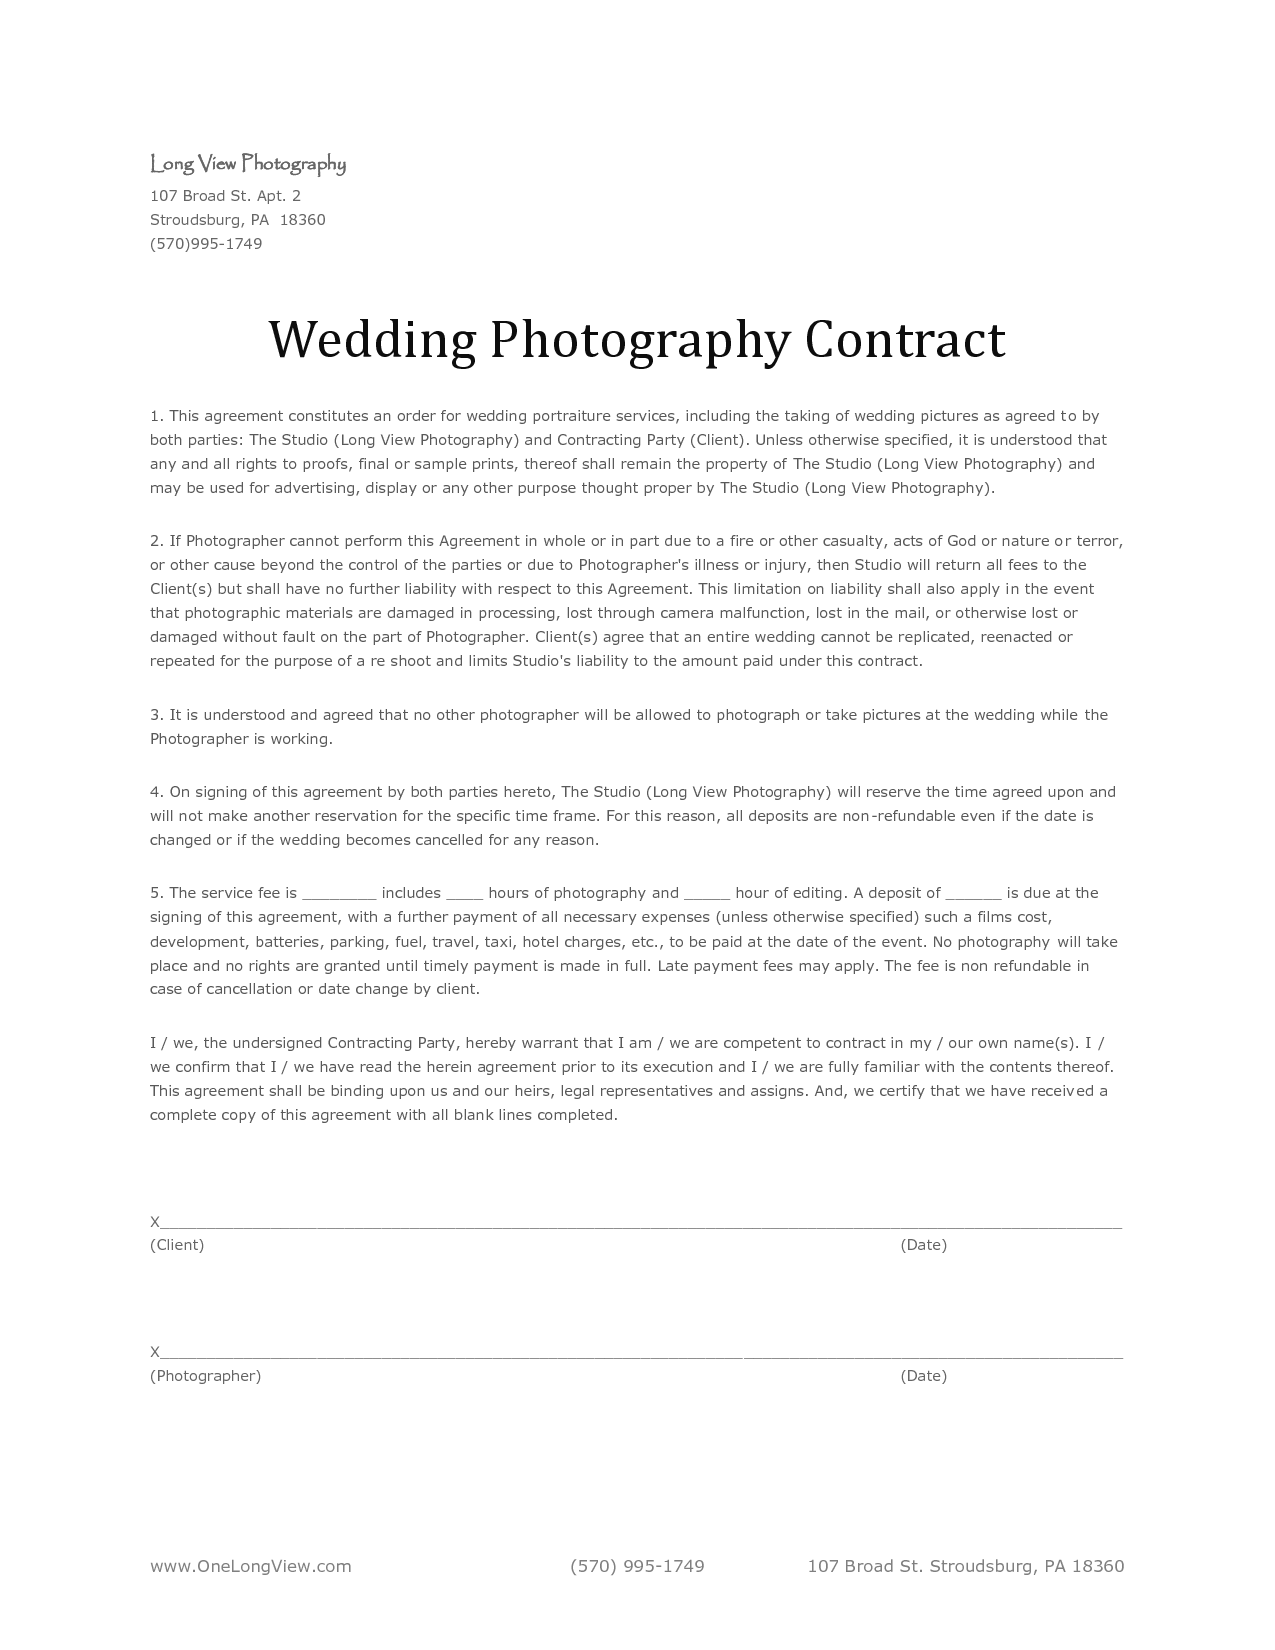 Photogapher Contract  Sample Wedding Photography Contract